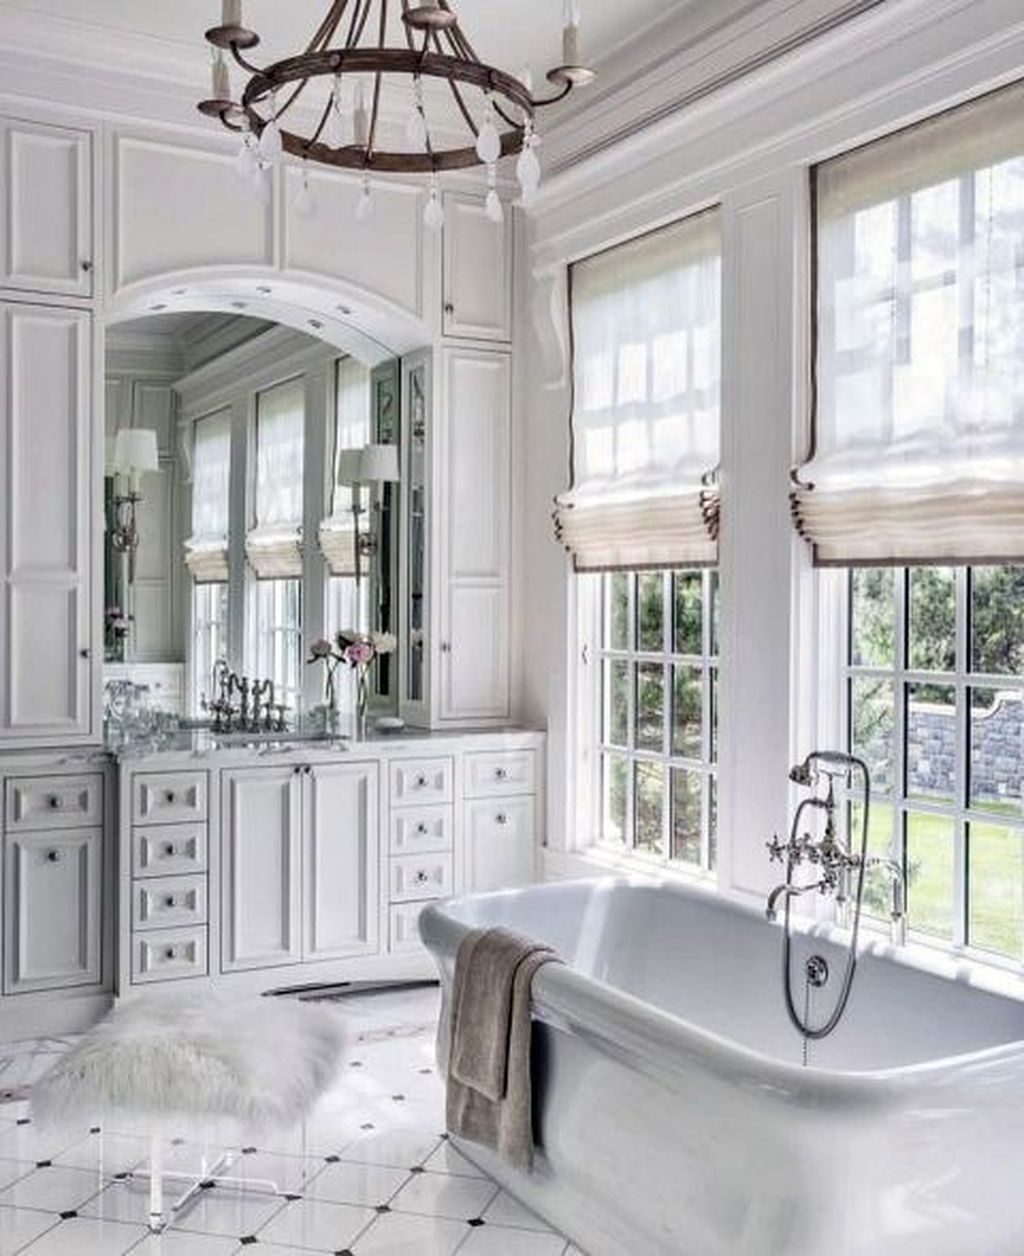 Luxury Bathroom Design And Decor Ideas 10